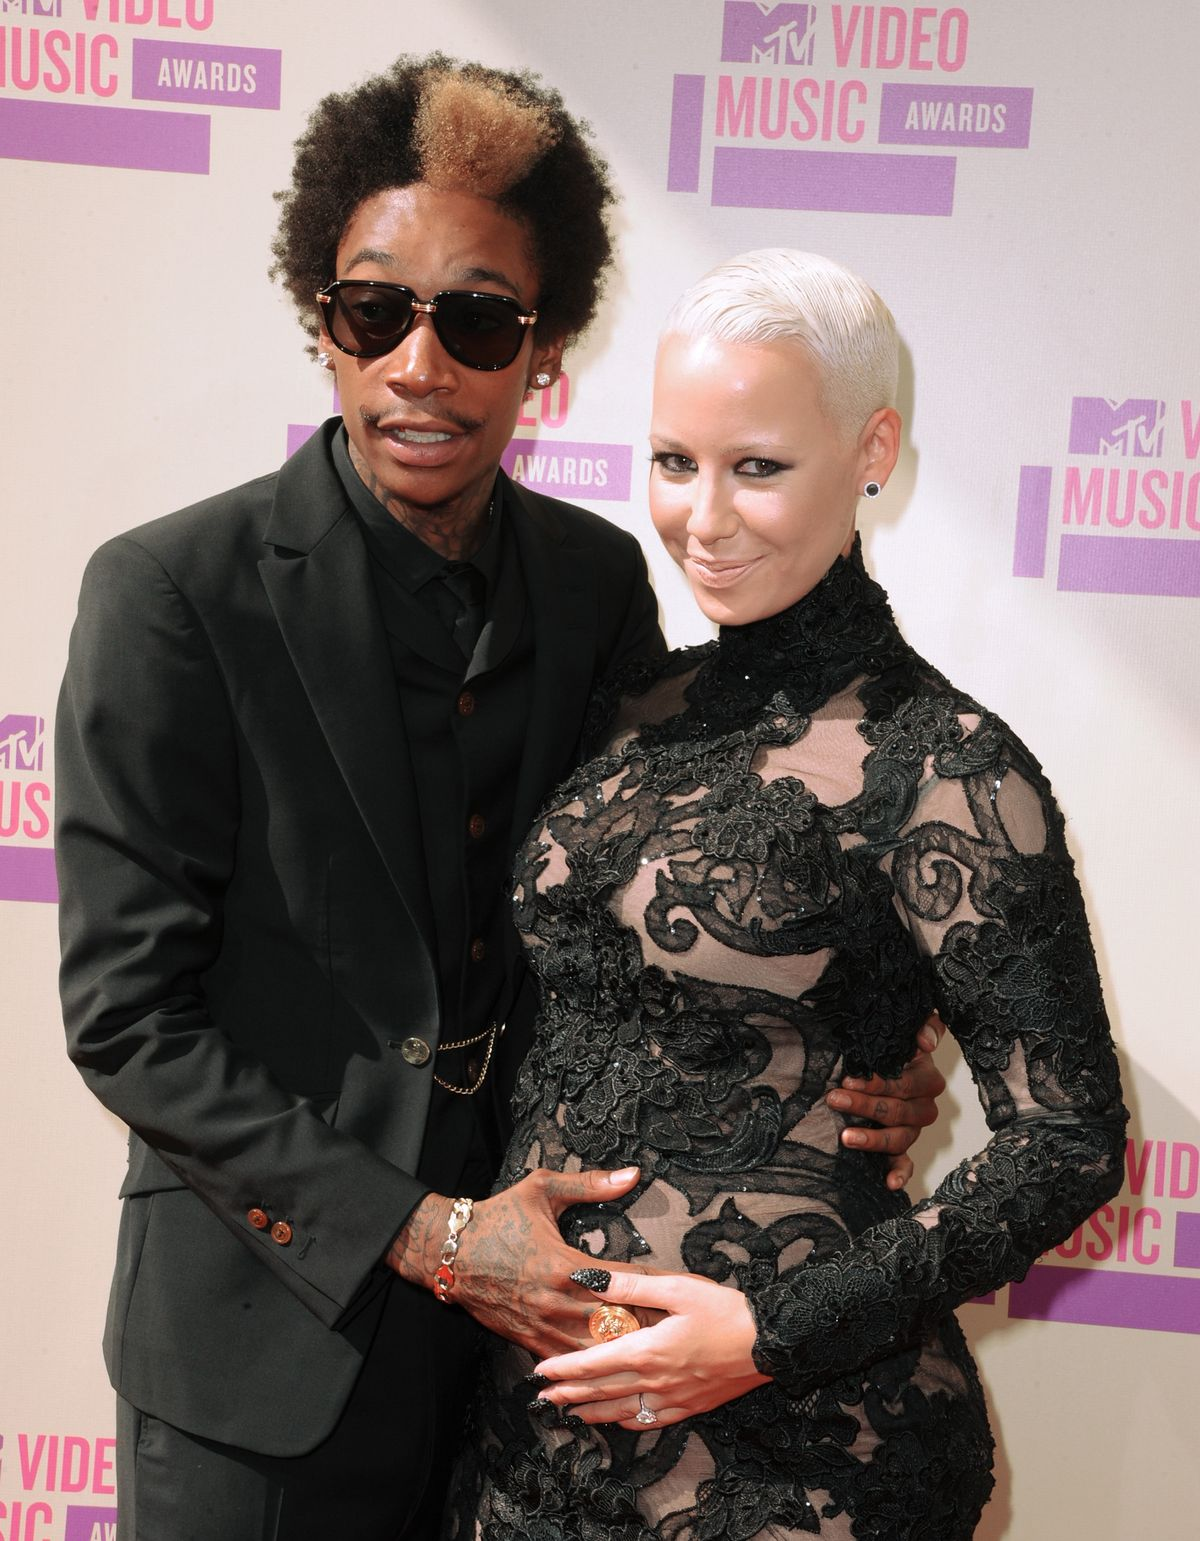 LOS ANGELES, CA - SEPTEMBER 06: (L-R) Rapper Wiz Khalifa and model Amber Rose arrives at the 2012 MTV Video Music Awards at Staples Center on September 6, 2012 in Los Angeles, California. (Photo by Steve Granitz/WireImage)